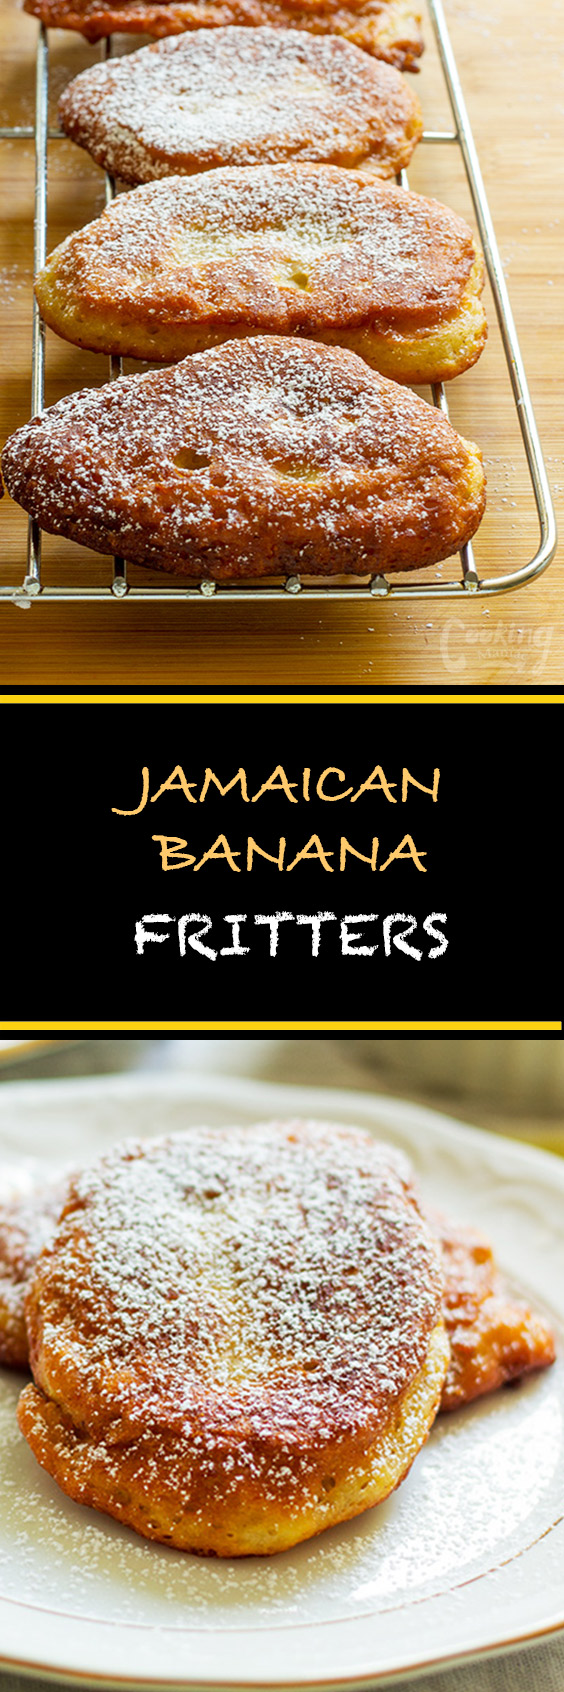 Jamaican Banana Fritters Cooking Maniac